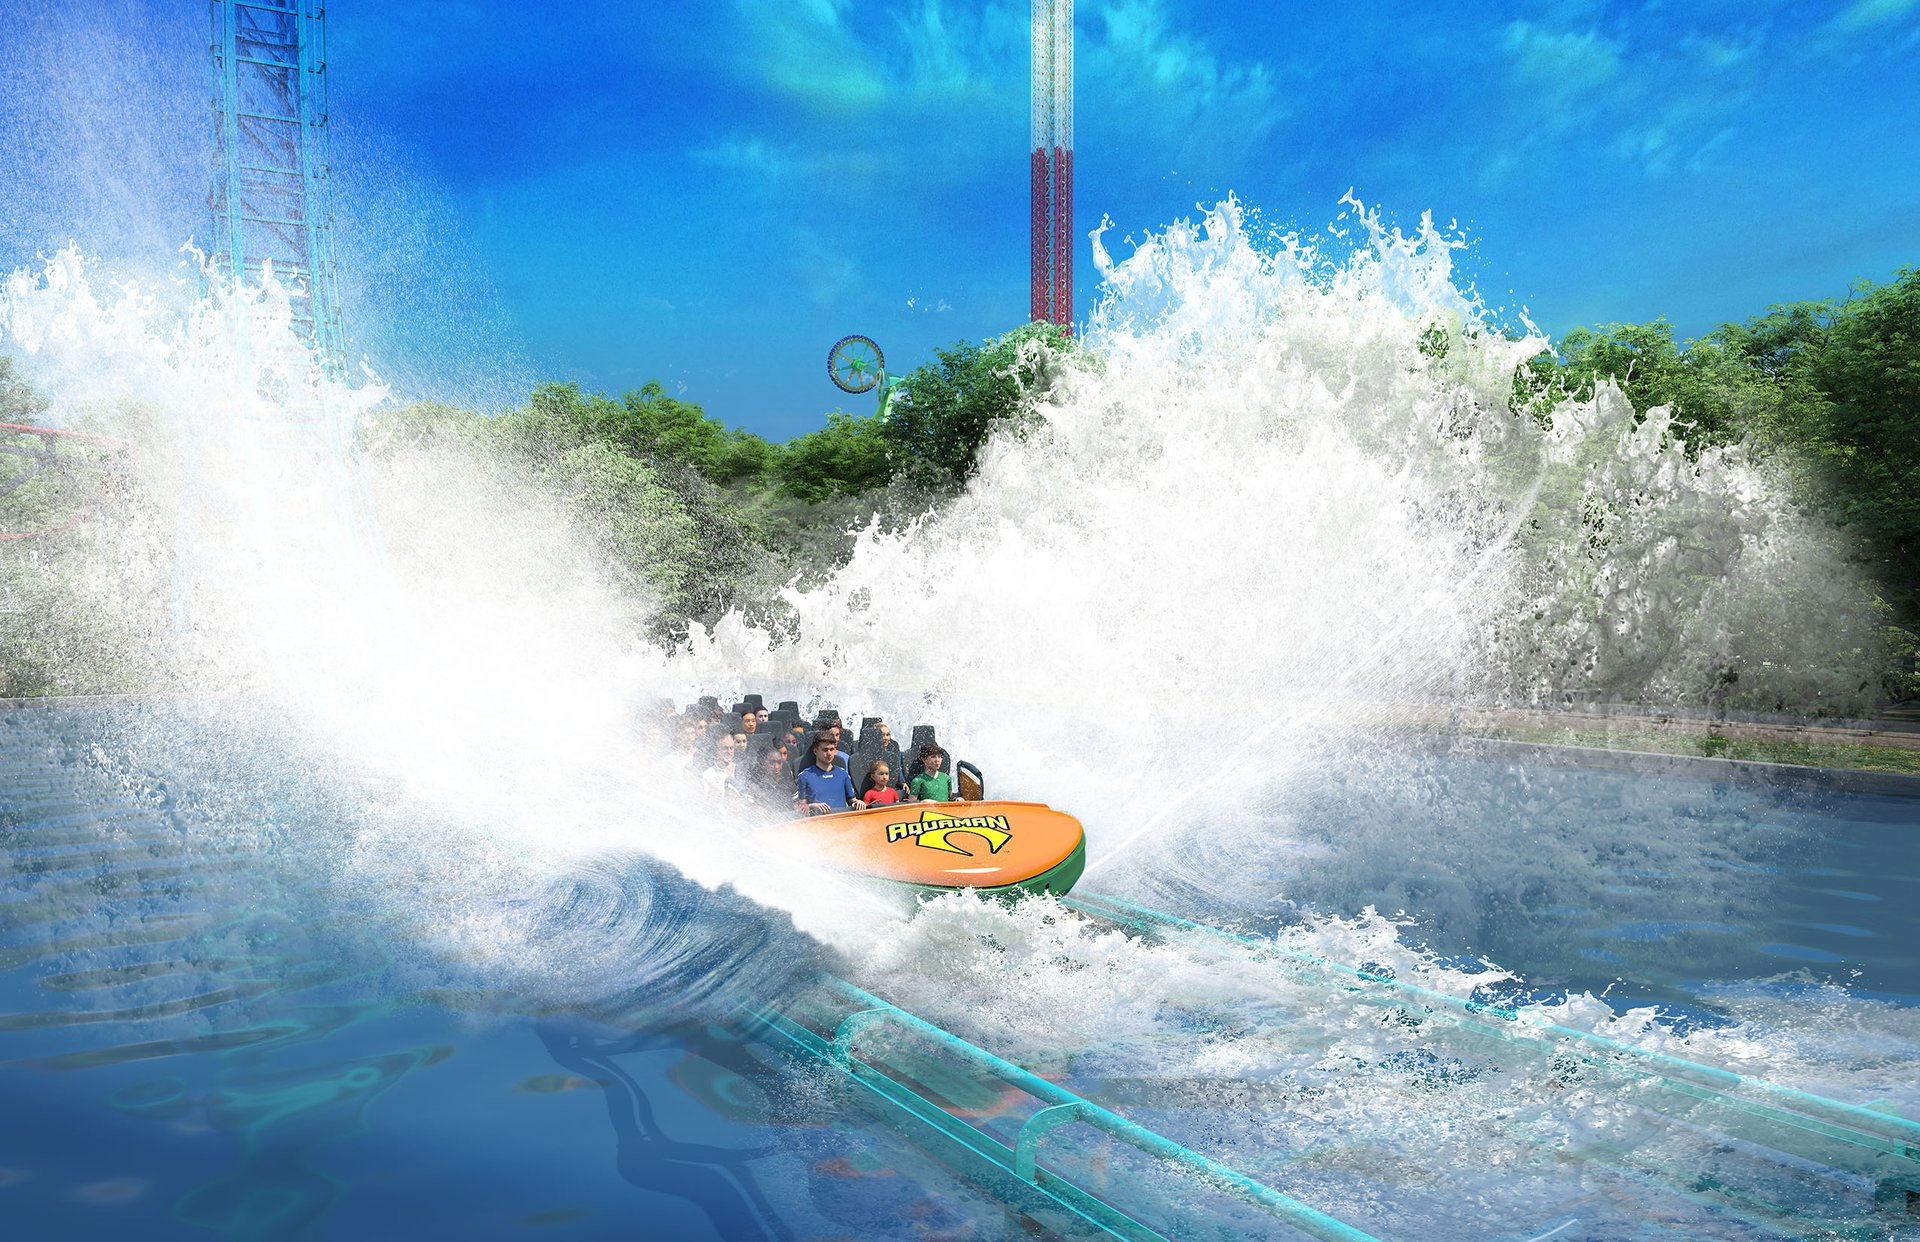 The ride ends in a final massive splashdown before heading back to the station.